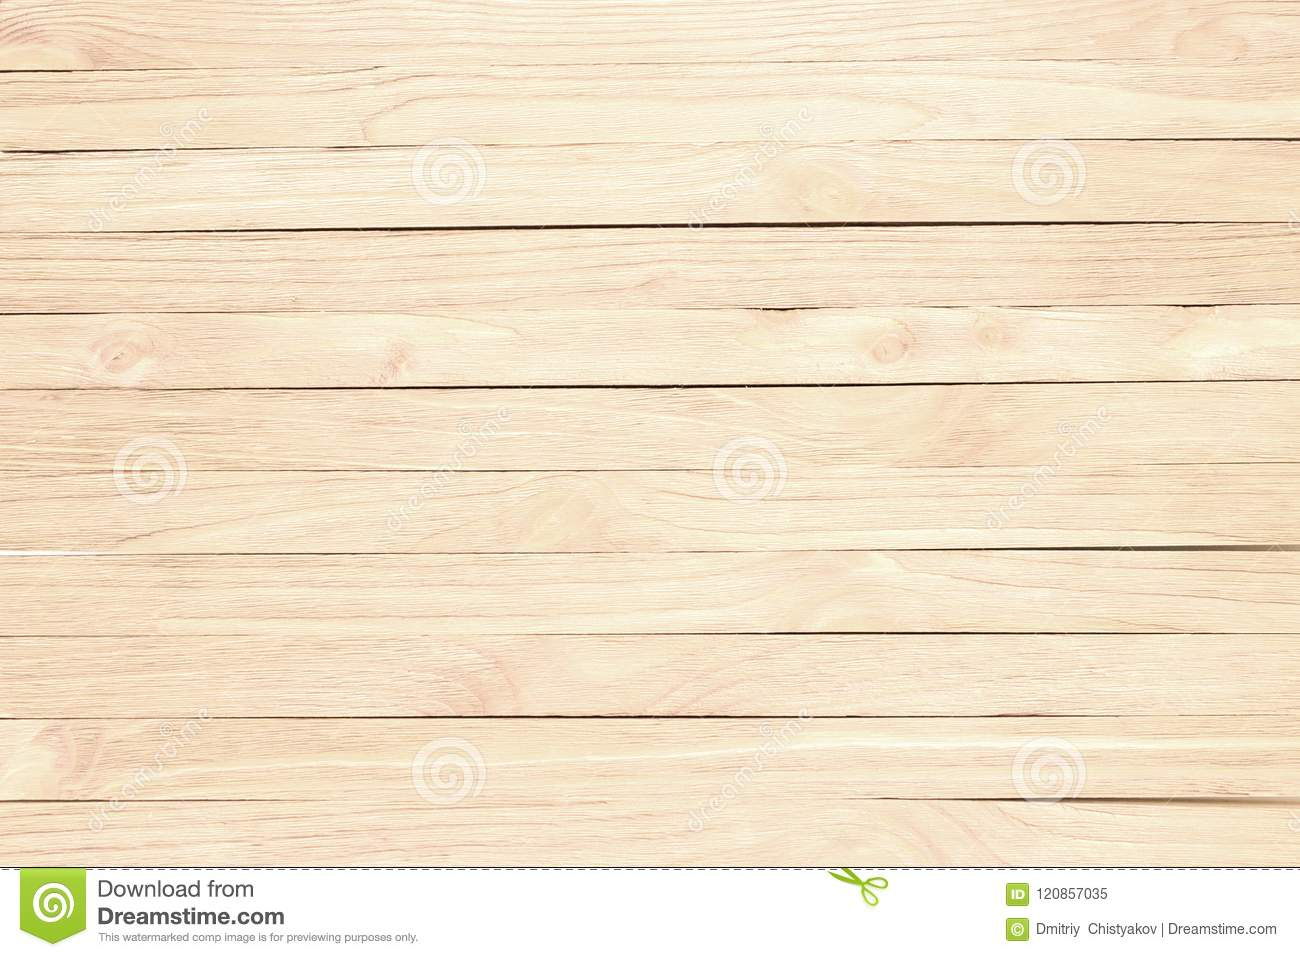 Wood Floor Texture Or Table Bright Wooden Board